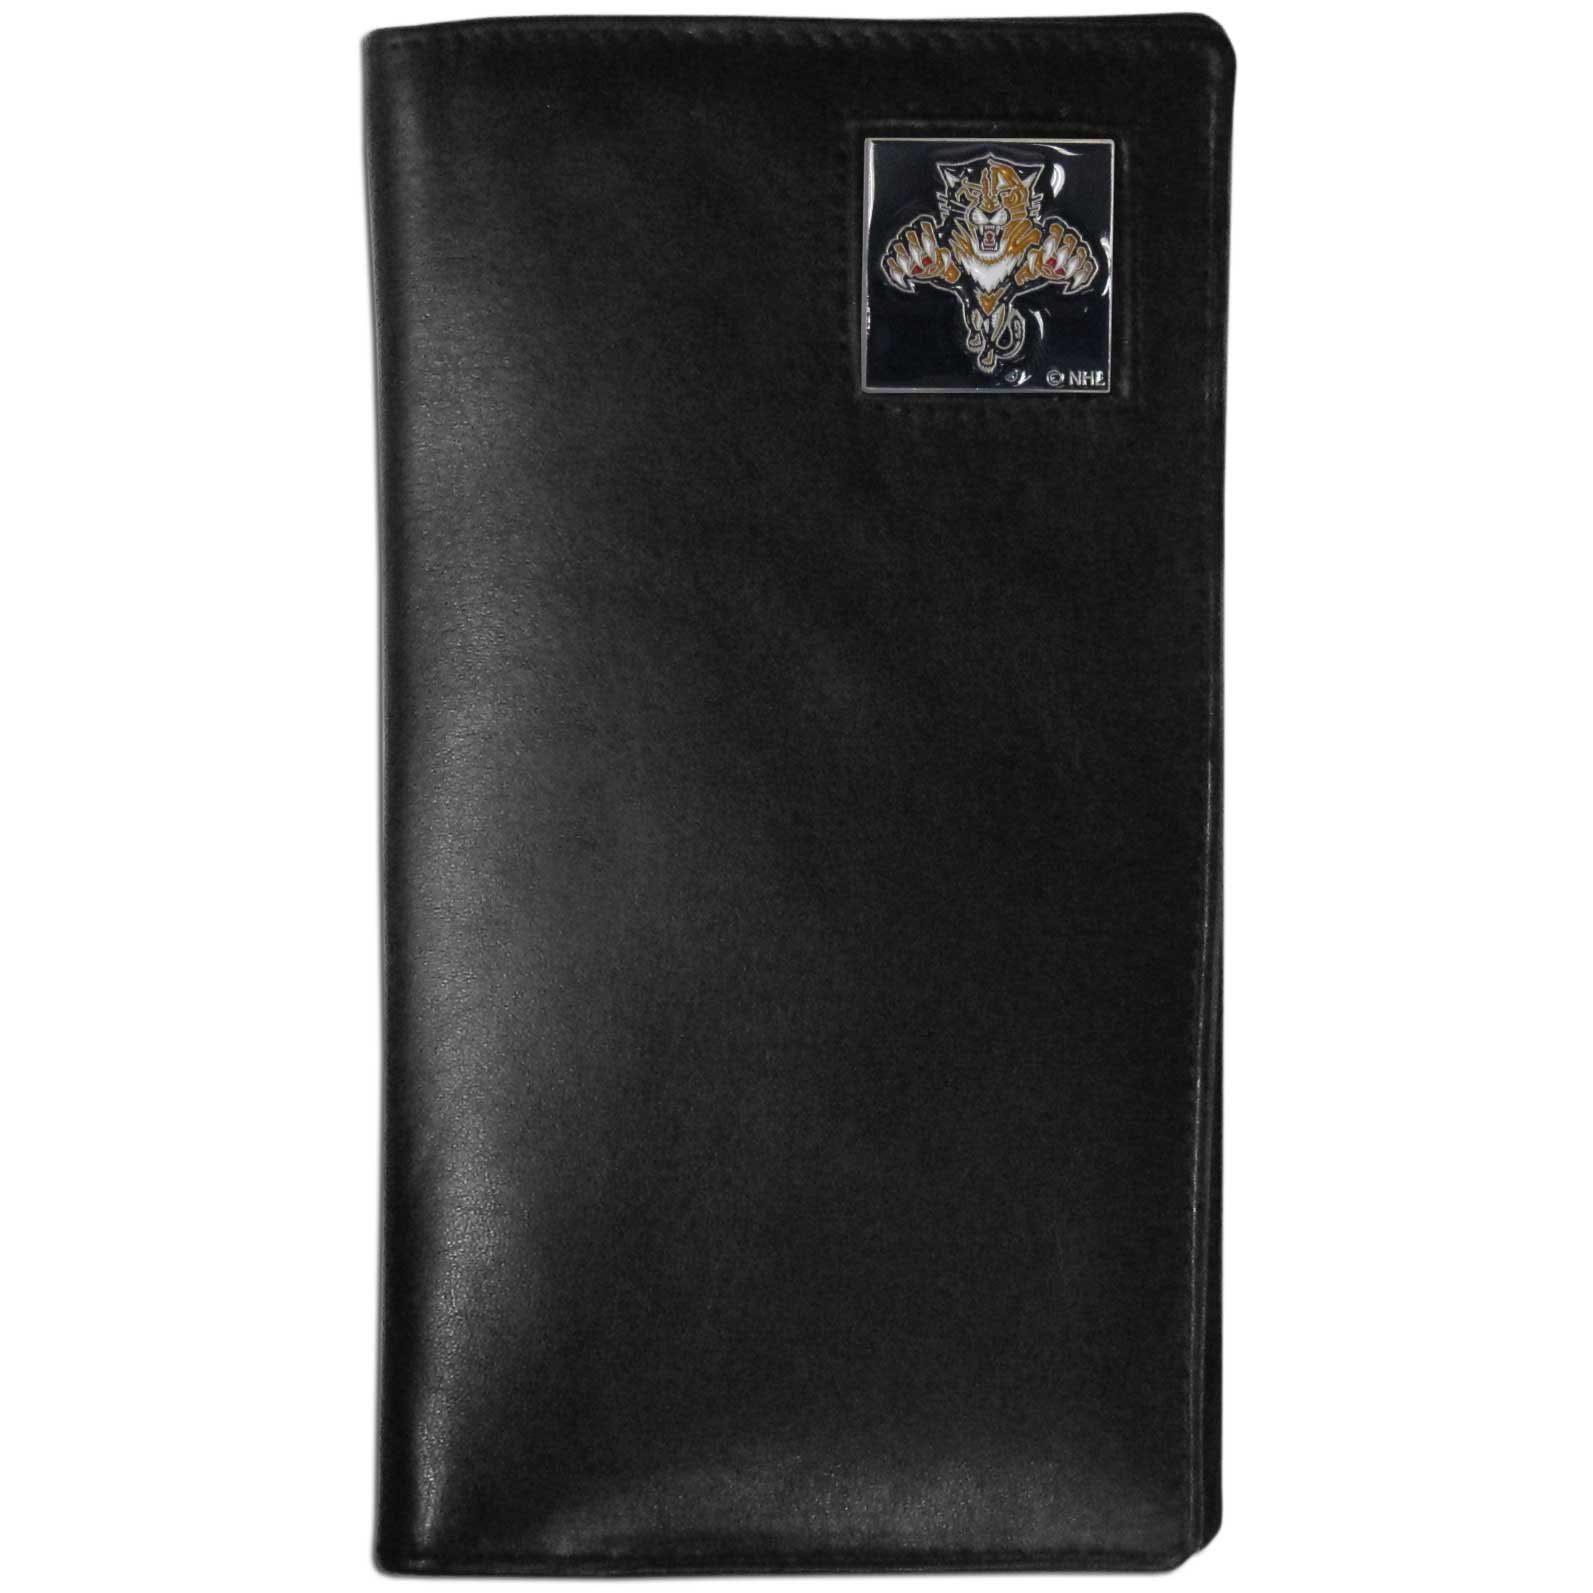 Florida Panthers Tall Leather Wallet - This officially licensed Florida Panthers tall leather wallet cover is made of high quality leather with a fully cast metal Florida Panthers emblem with enameled Florida Panthers color detail. The cover fits both side and top loaded checks and includes a large zippered pocket, windowed ID slot, numerous credit card slots and billfold pocket.